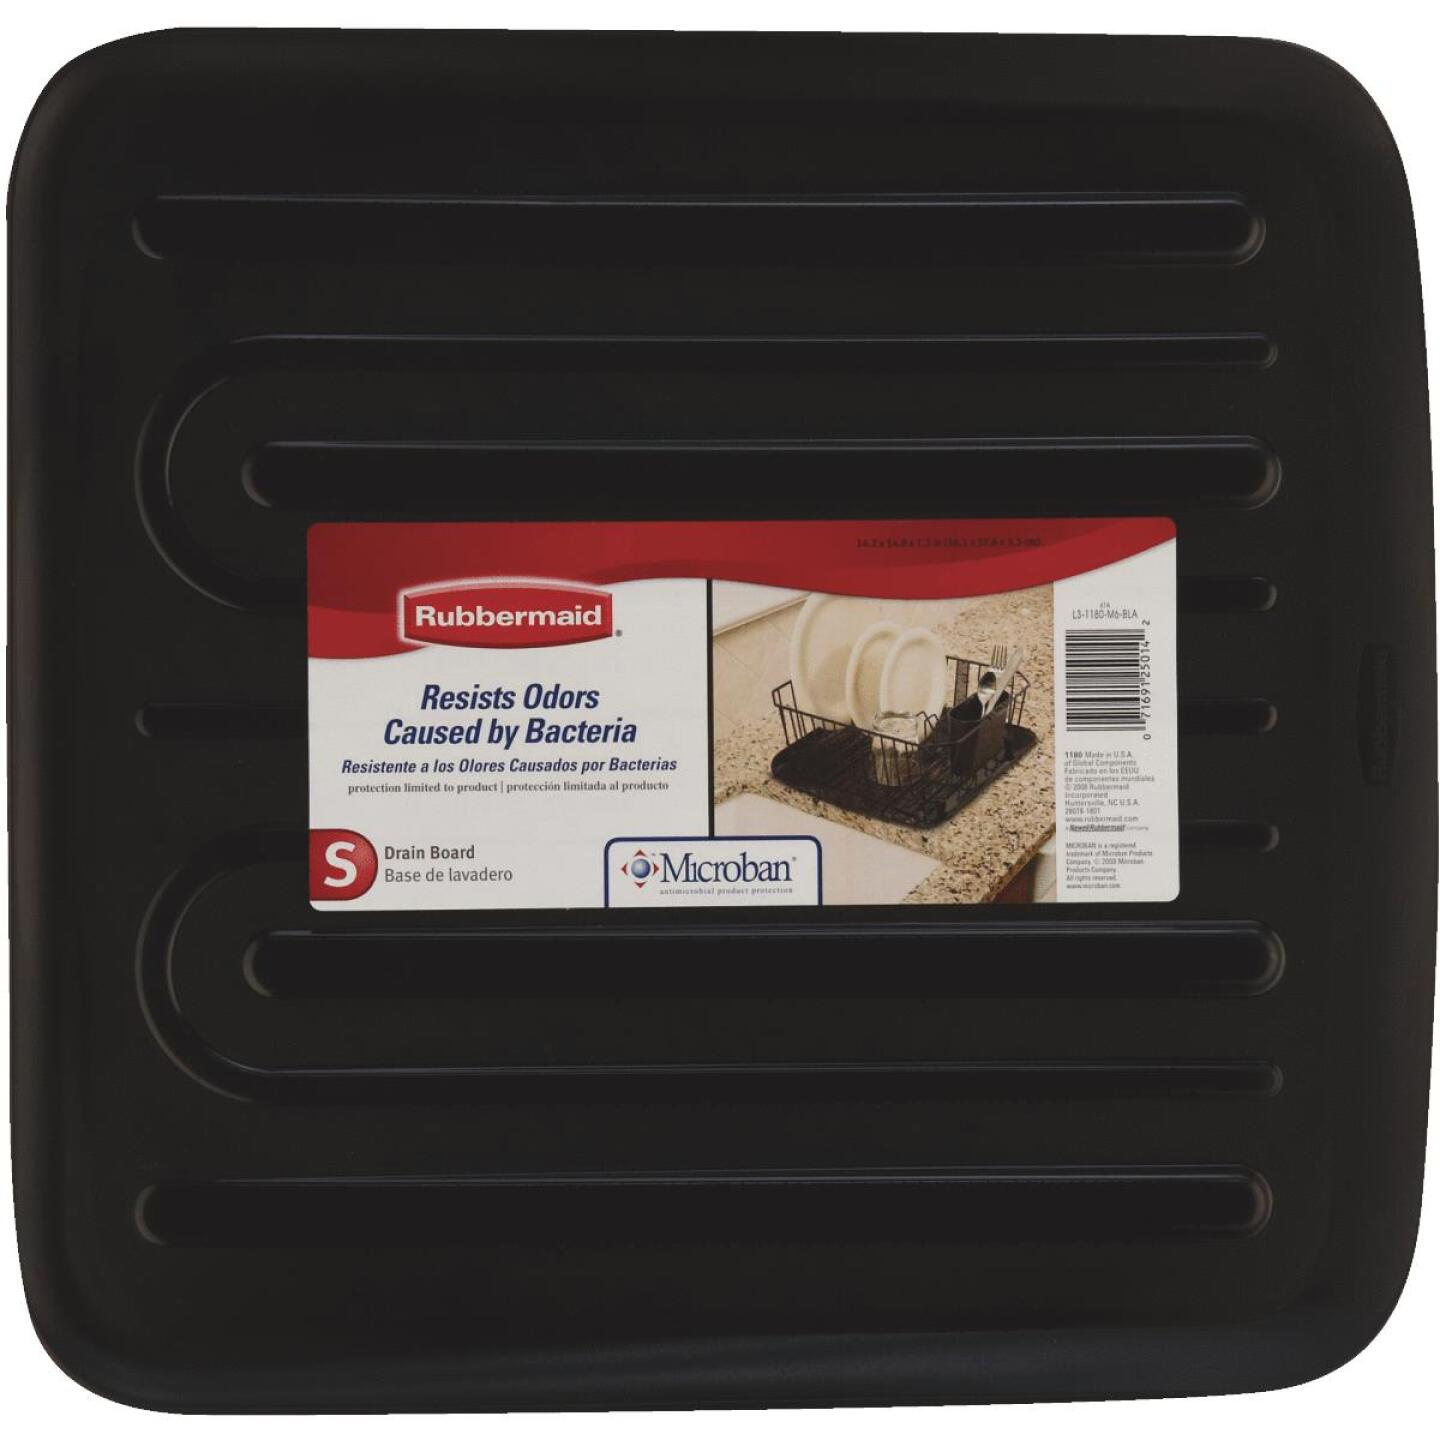 Rubbermaid 14.38 In. x 15.38 In. Black Sloped Drainer Tray Image 3